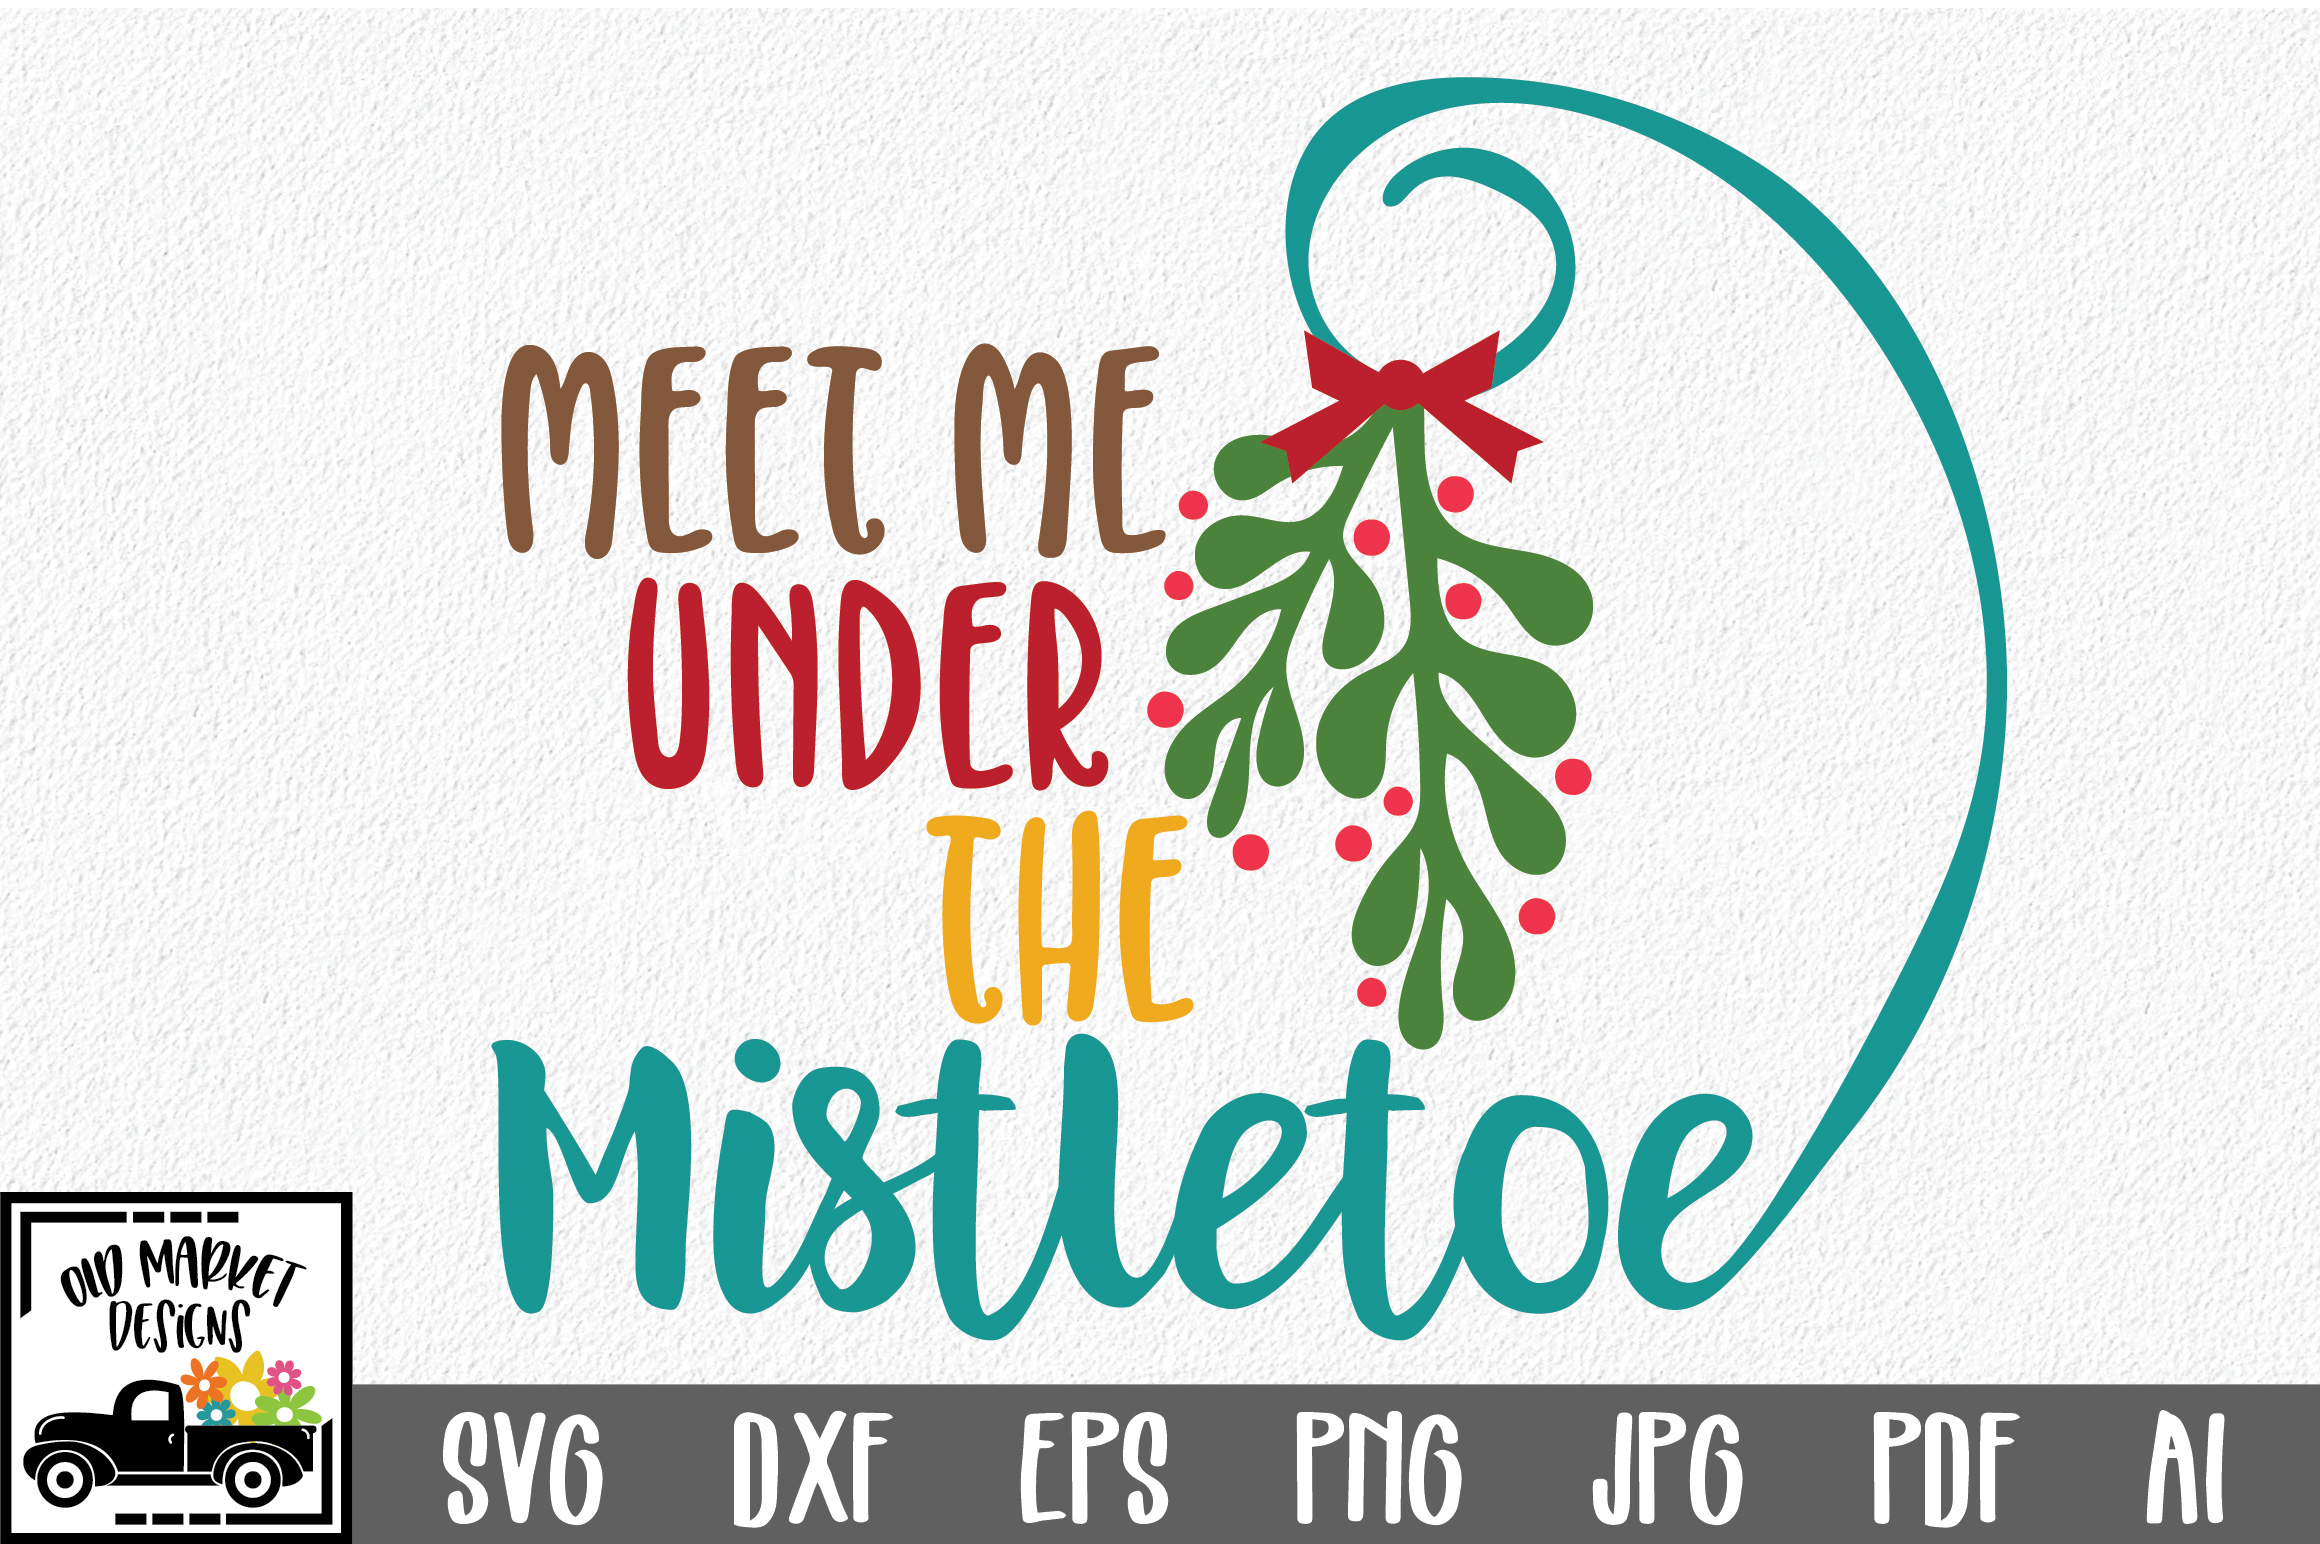 Download Free Meet Me Under The Mistletoe Christmas Svg Cut File Graphic By for Cricut Explore, Silhouette and other cutting machines.